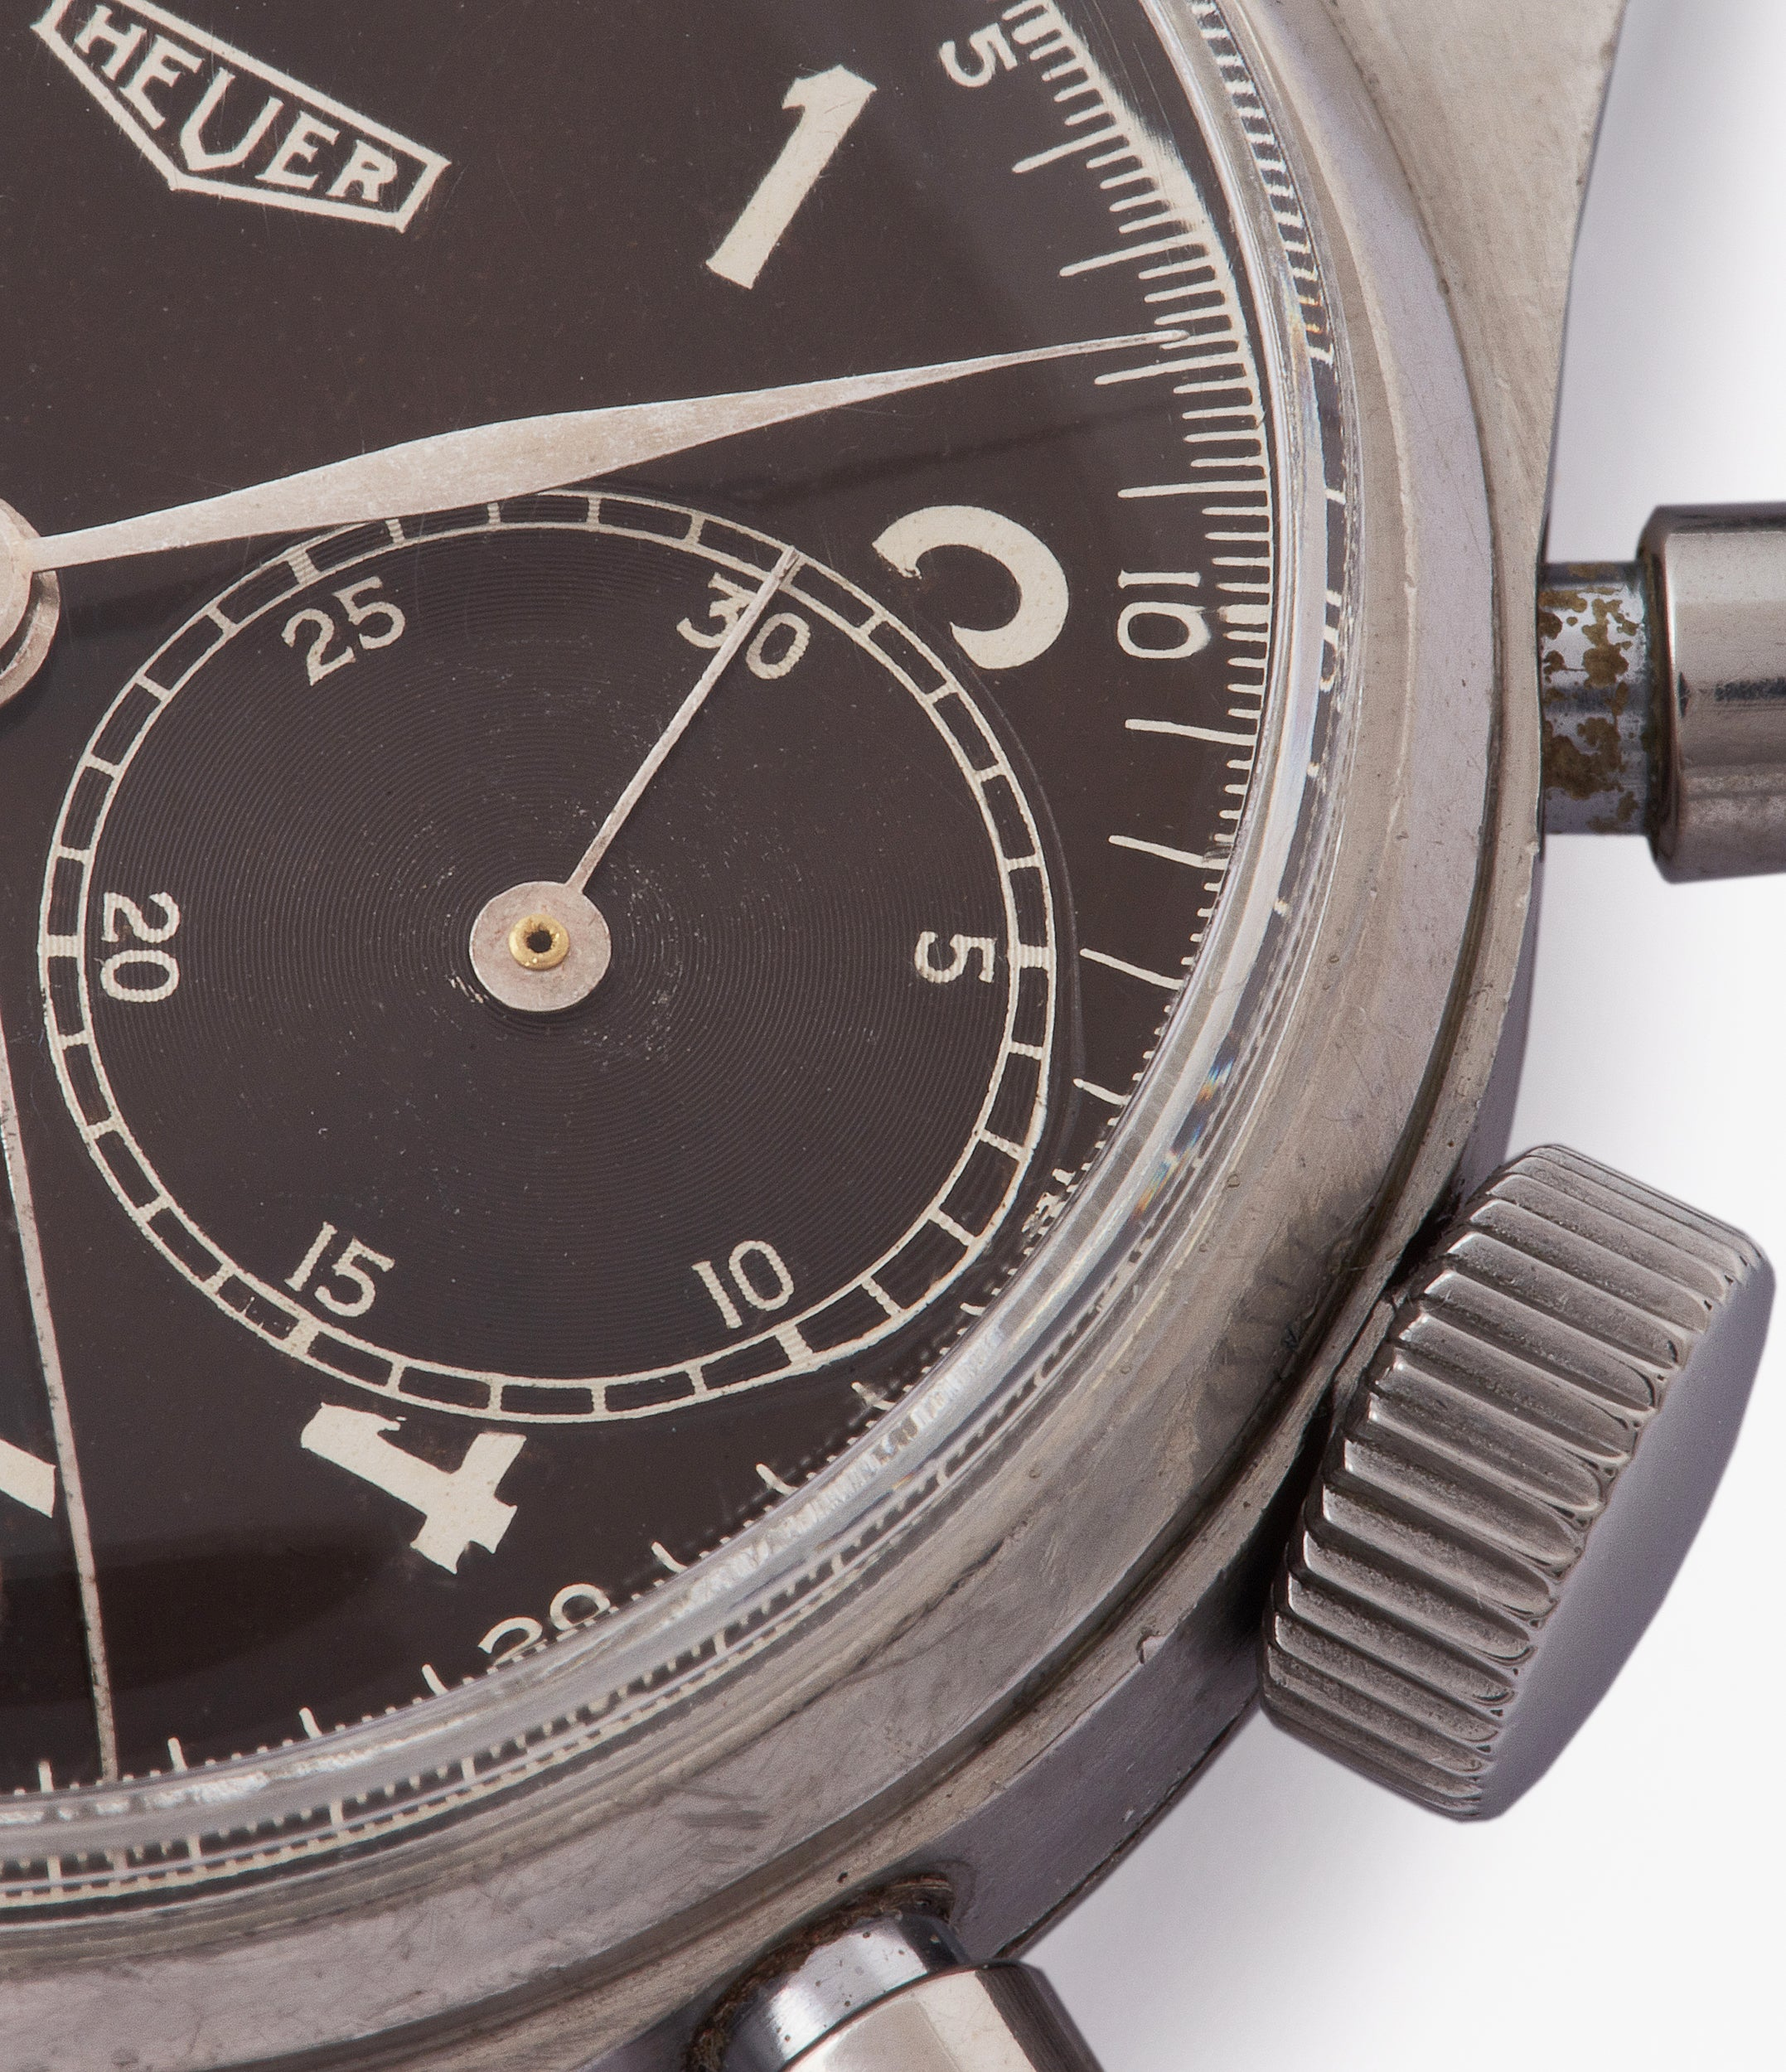 selling vintage Heuer pre-Carrera 406NR steel chronograph sport watch Landeron 13 for sale online at A Collected Man London UK rare watch specialist